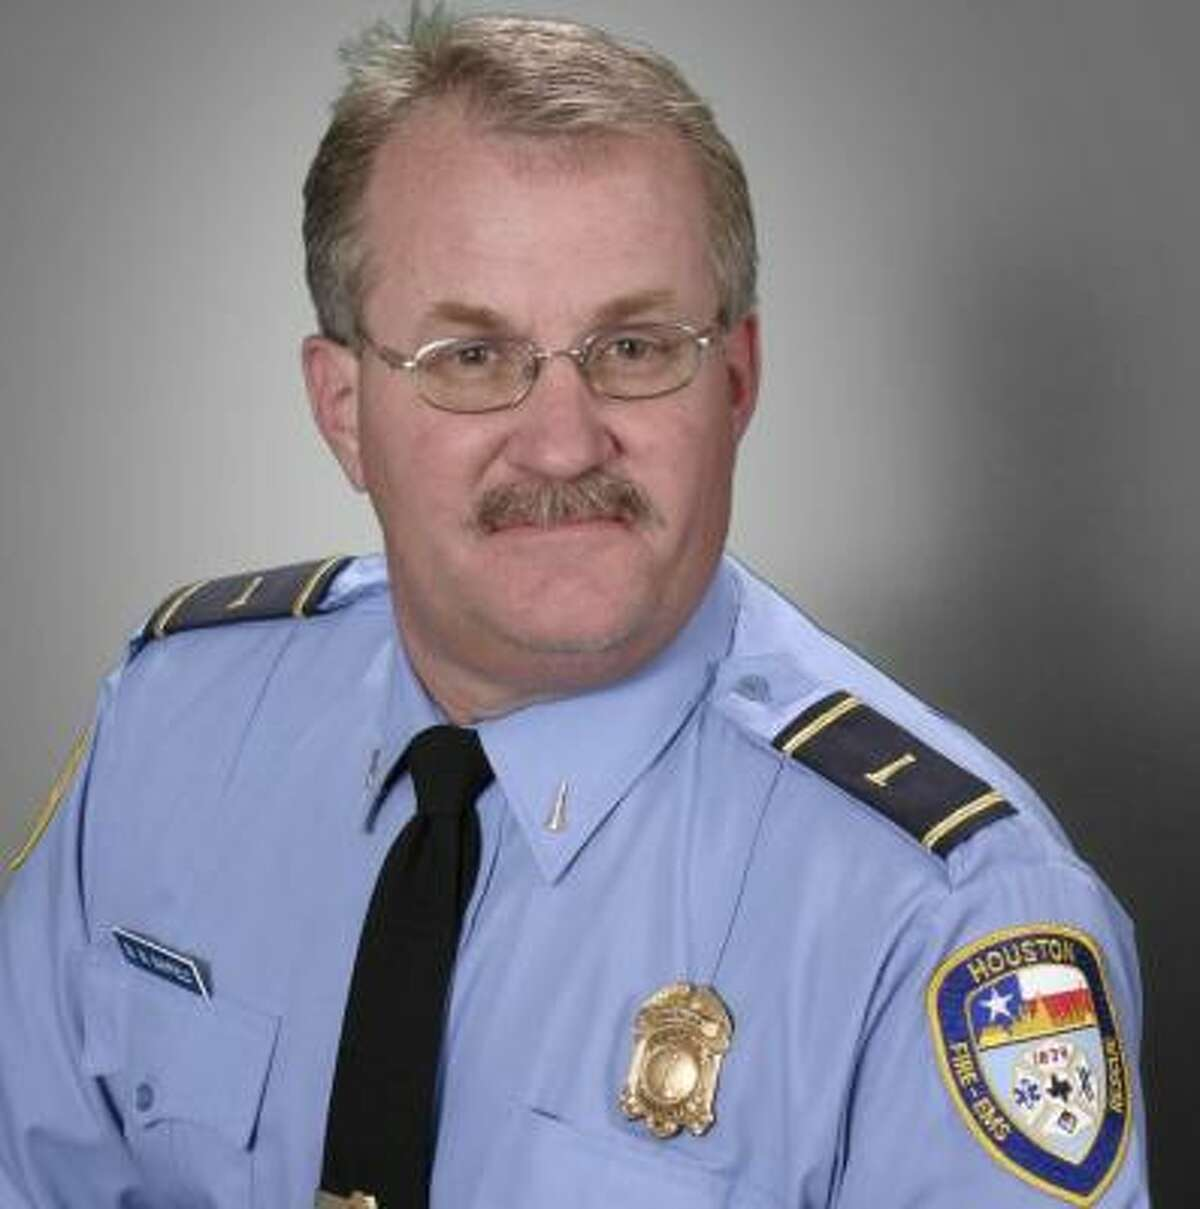 Capt. Michael Mayfield has been with the Fire Department for 34 years.